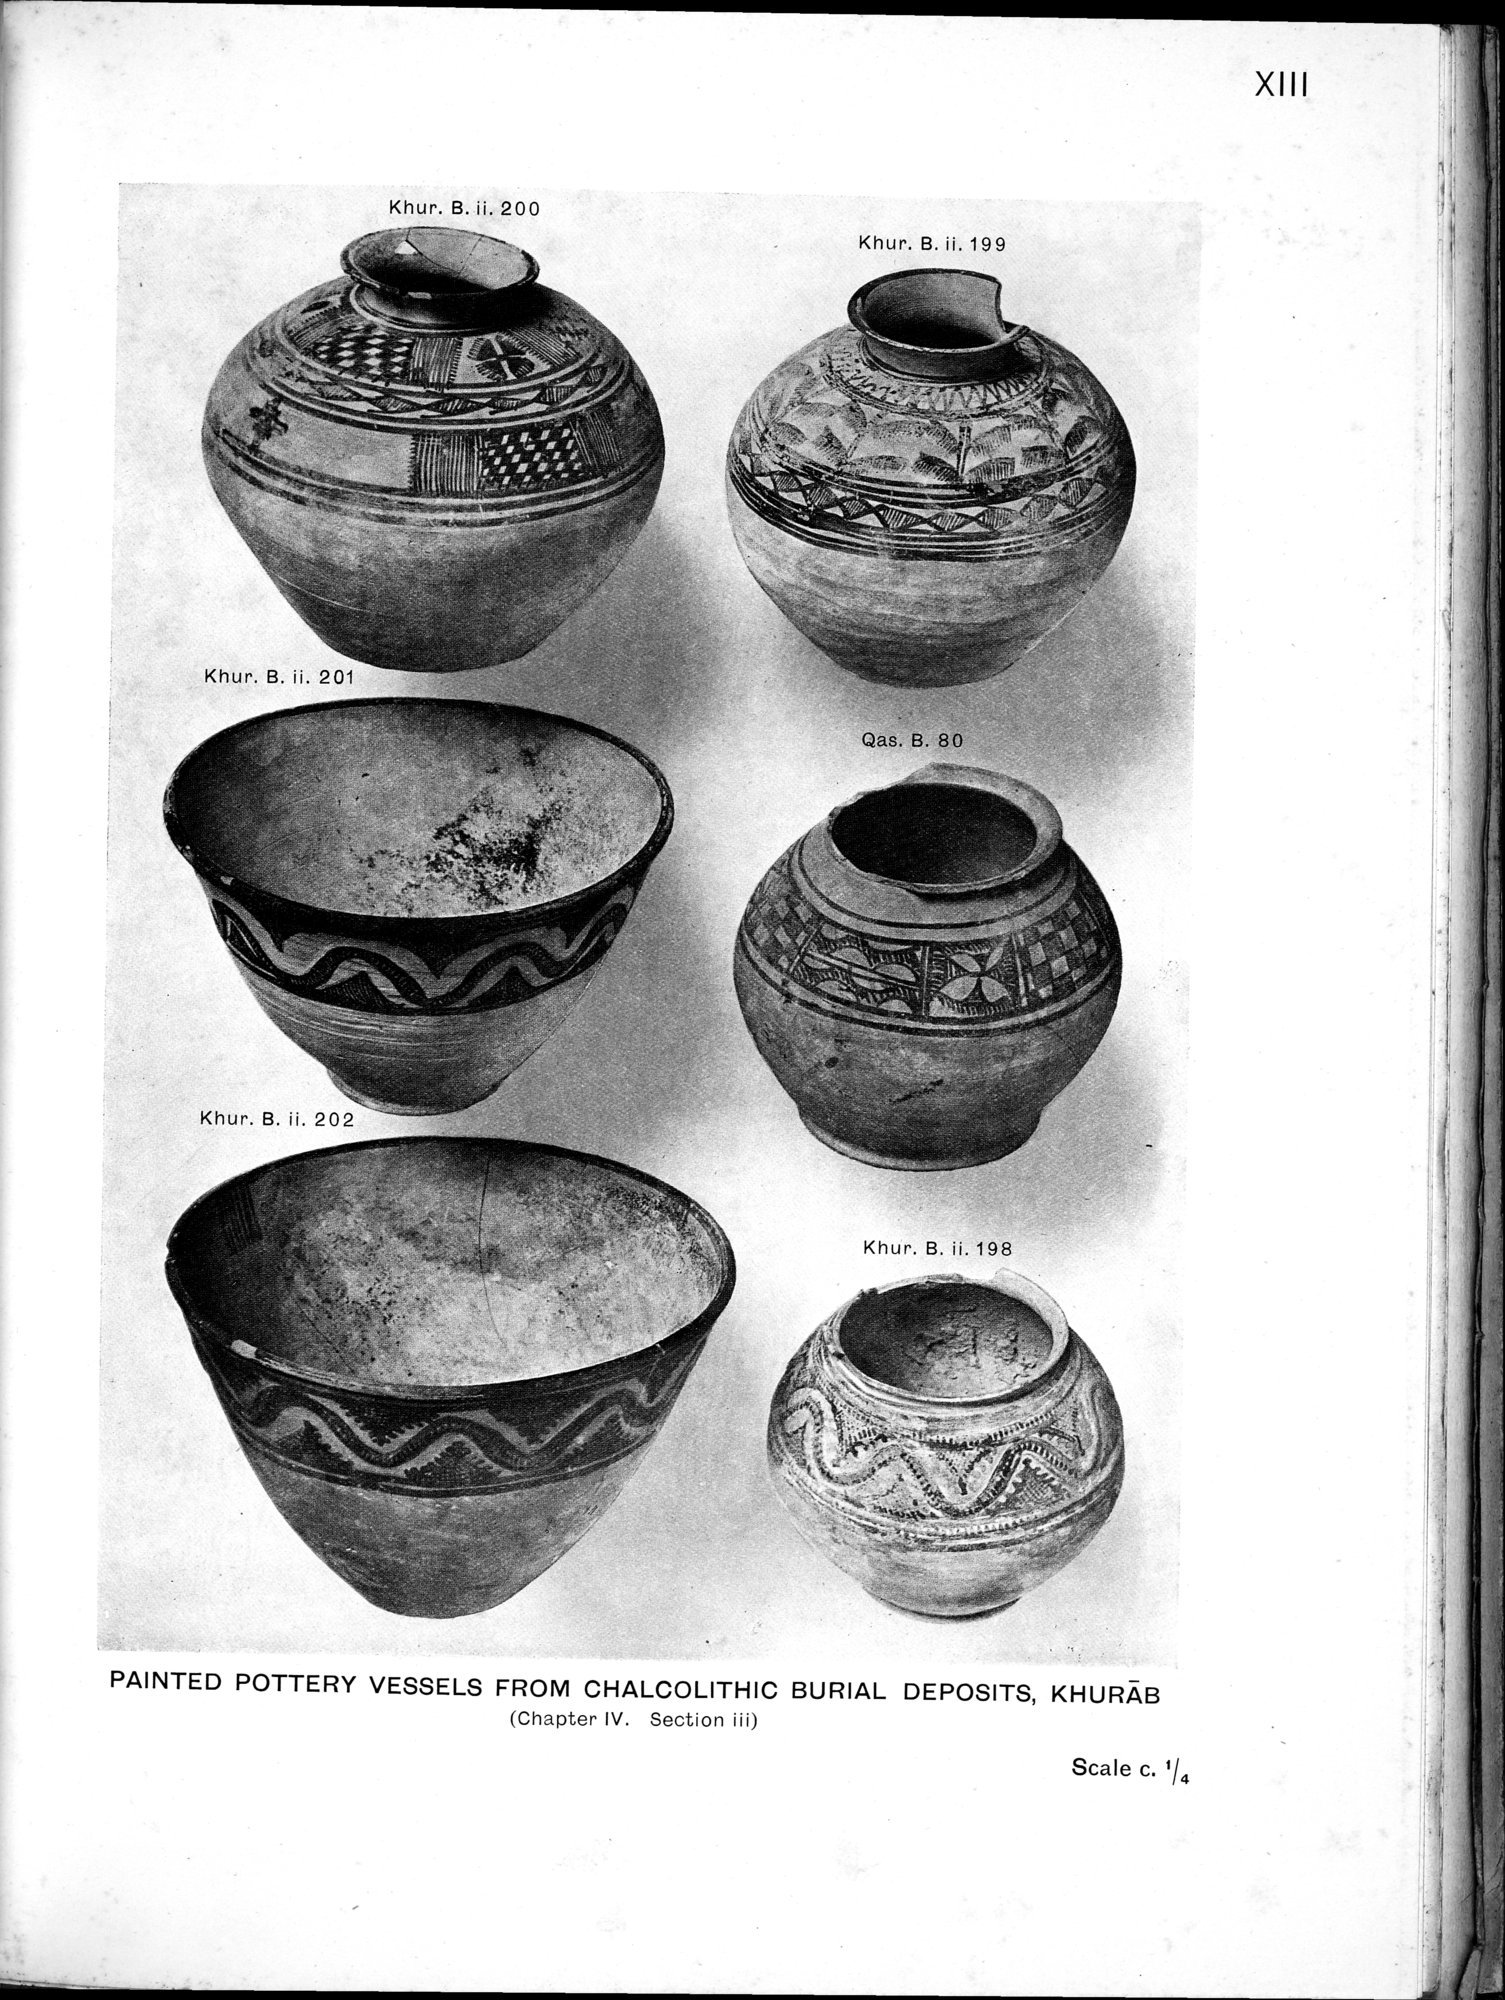 Archaeological Reconnaissances in North-Western India and South-Eastern Īrān : vol.1 / Page 377 (Grayscale High Resolution Image)